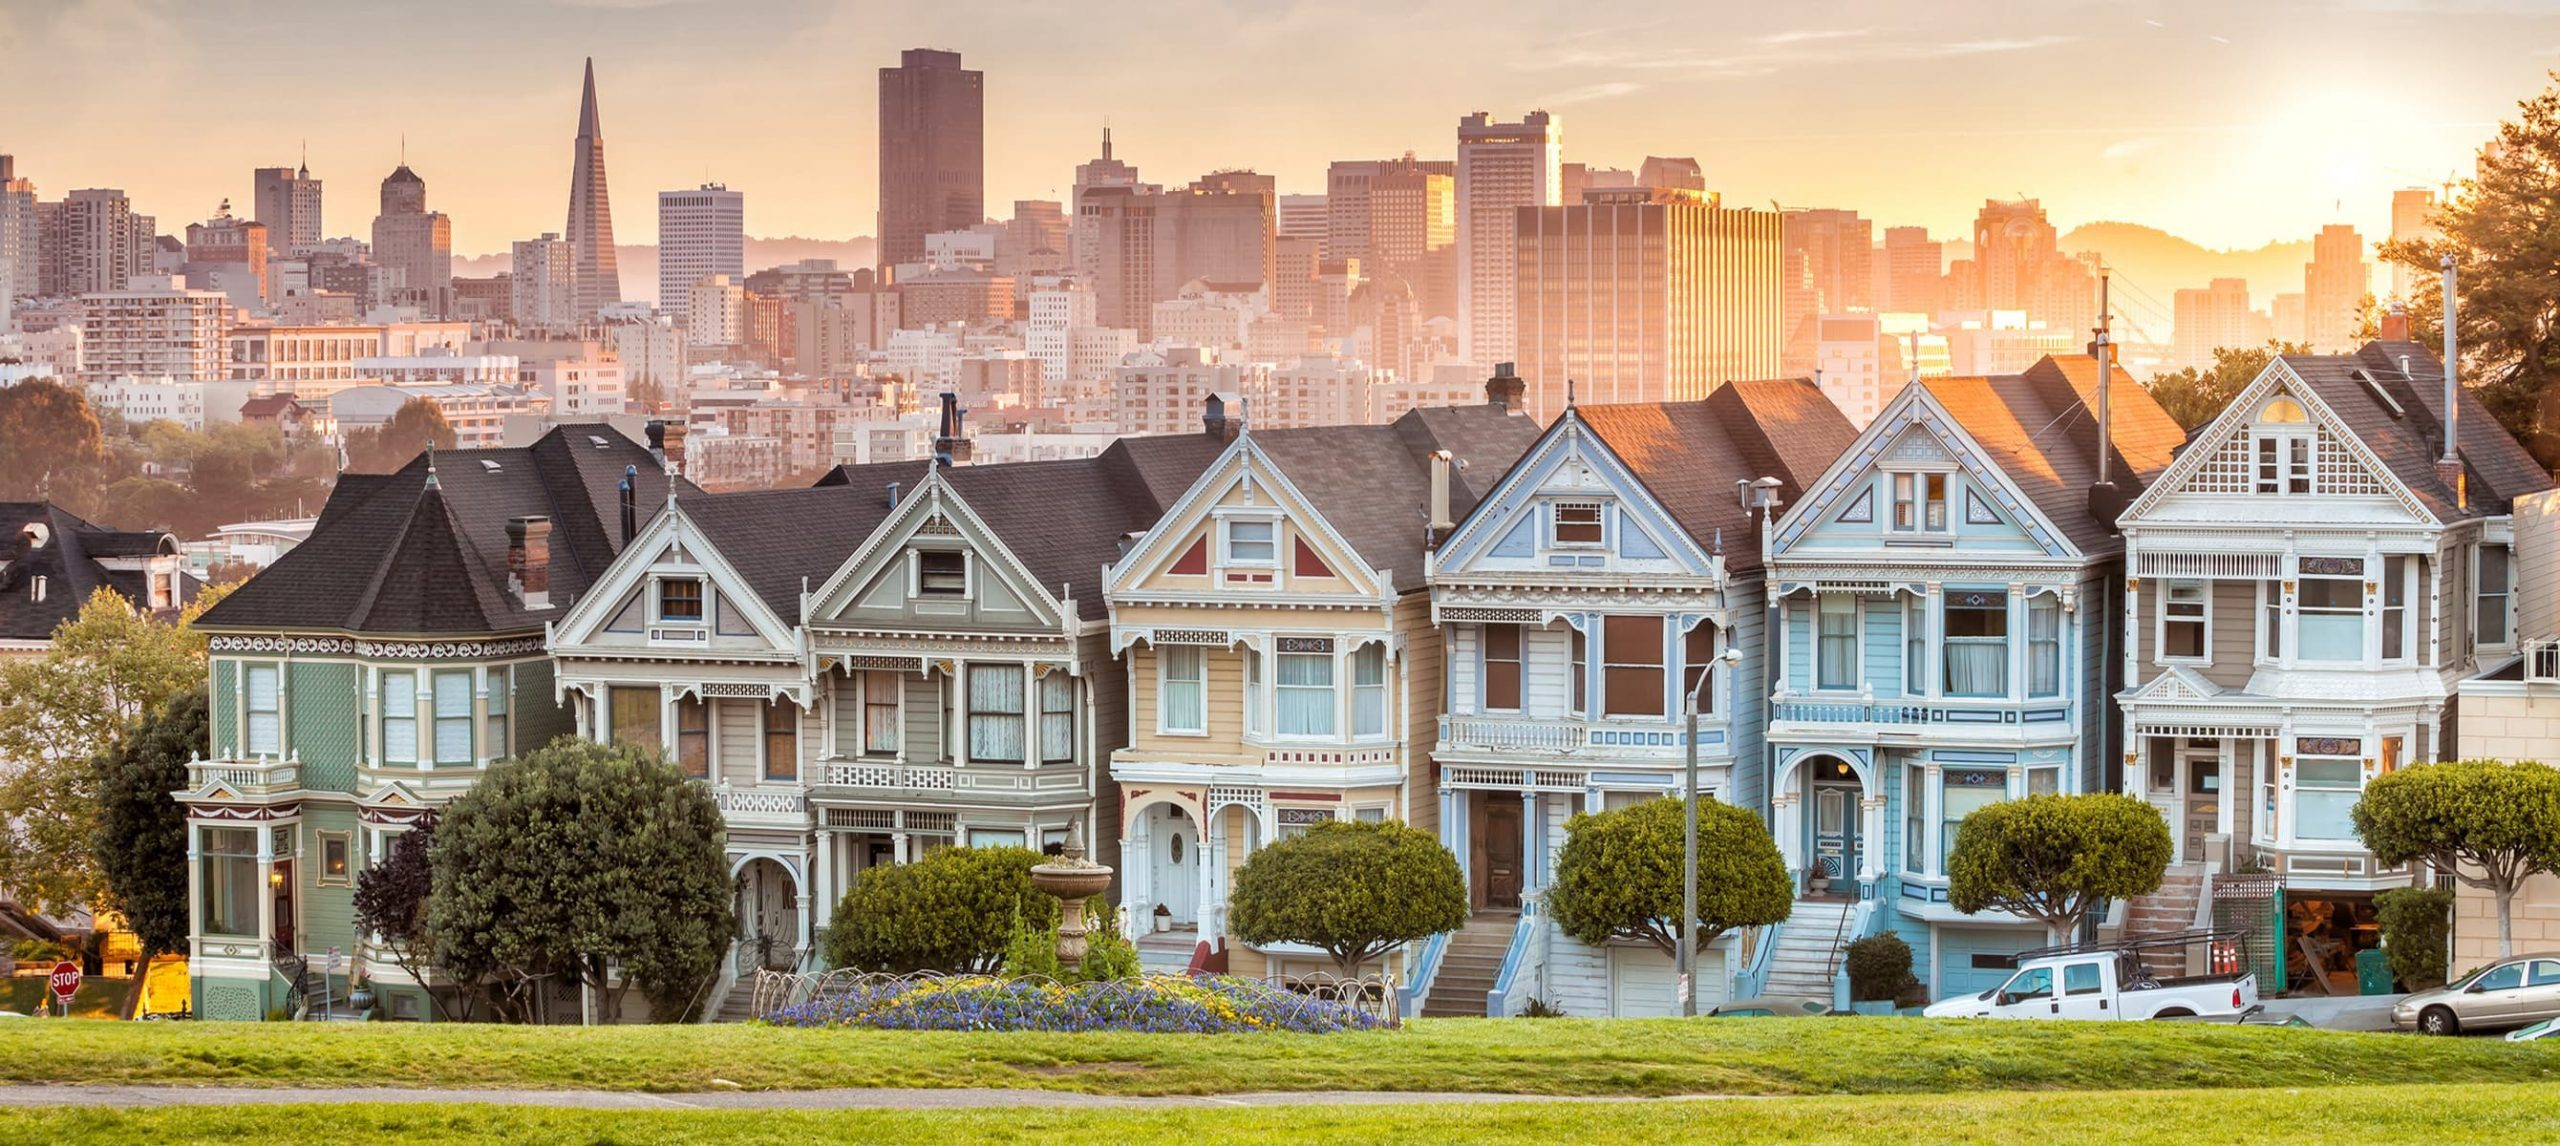 The 15 Most Instagrammable Places In San Francisco